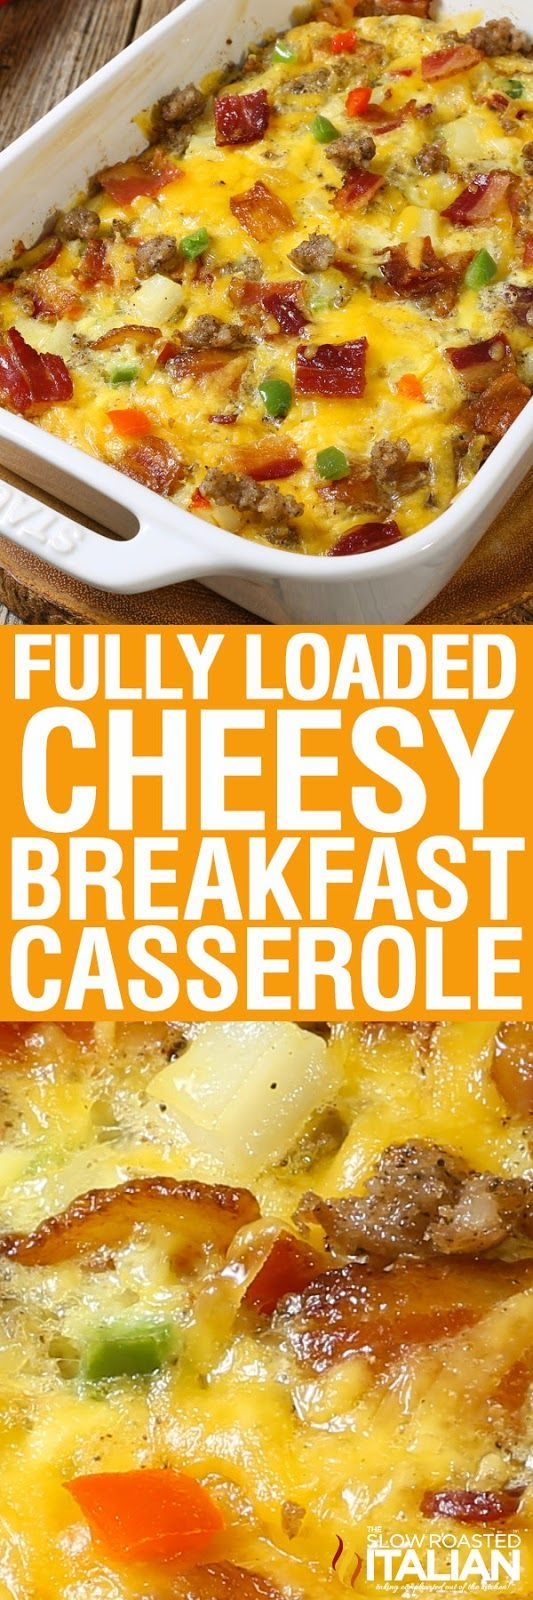 Fully Loaded Cheesy Breakfast Casserole is all of our favorite things in an easy breakfast recipe that you can make ahead. Packed with eggs, potatoes, veggies, sausage AND bacon it is truly a full breakfast in one dish. The overnight cooking method makes this a winner in my house!